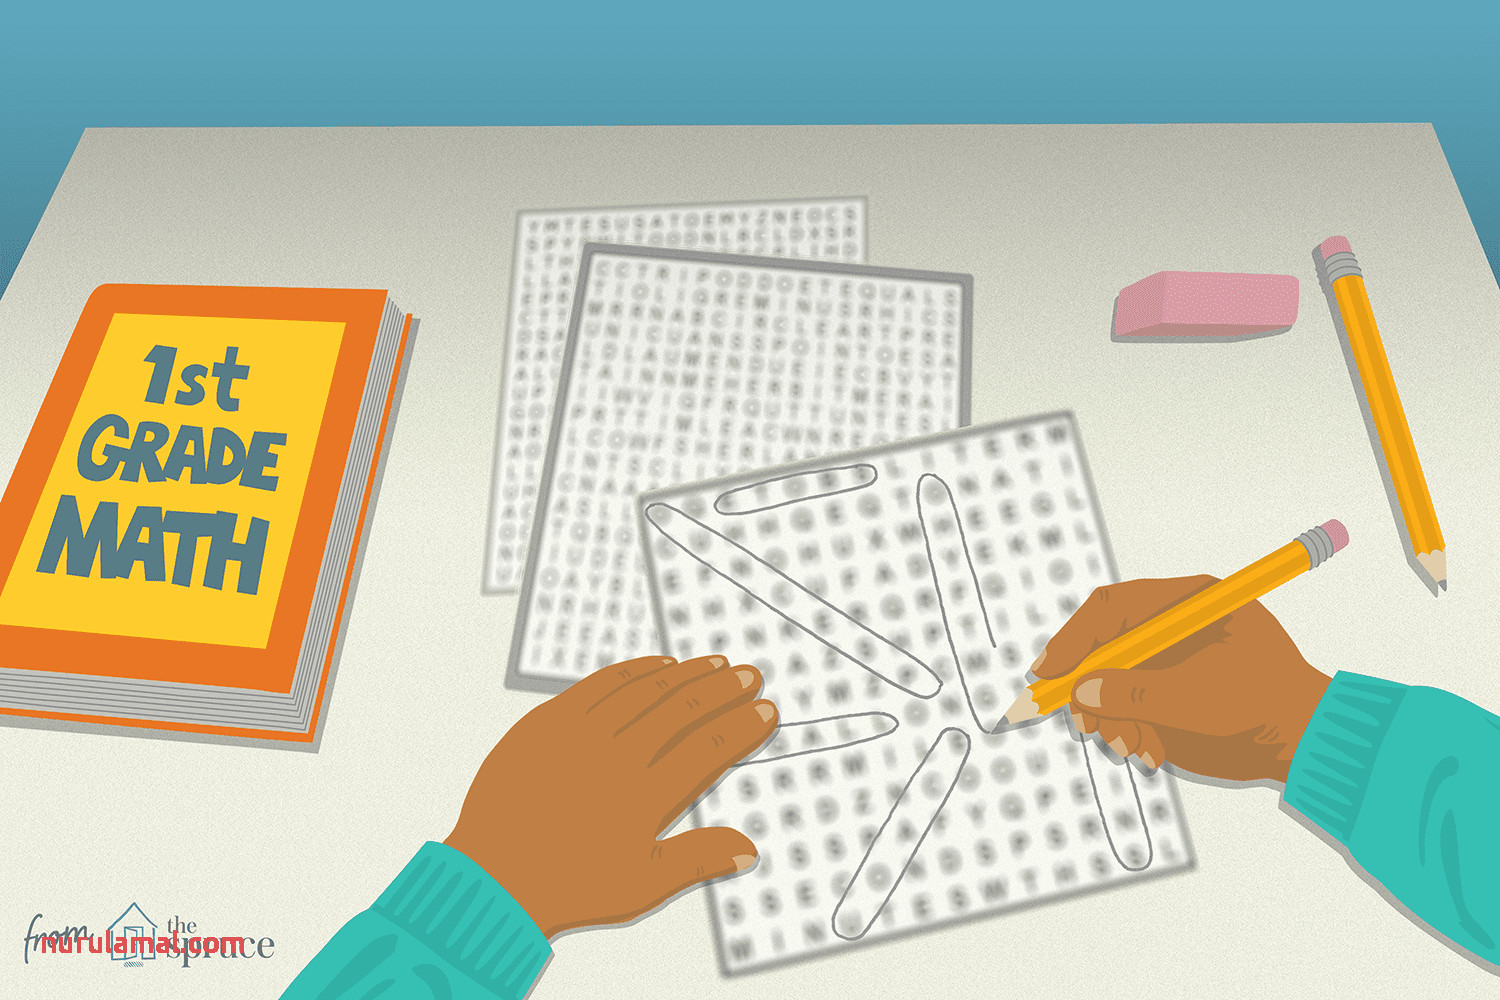 31 Free Math Word Search Puzzles for All Skill Levels